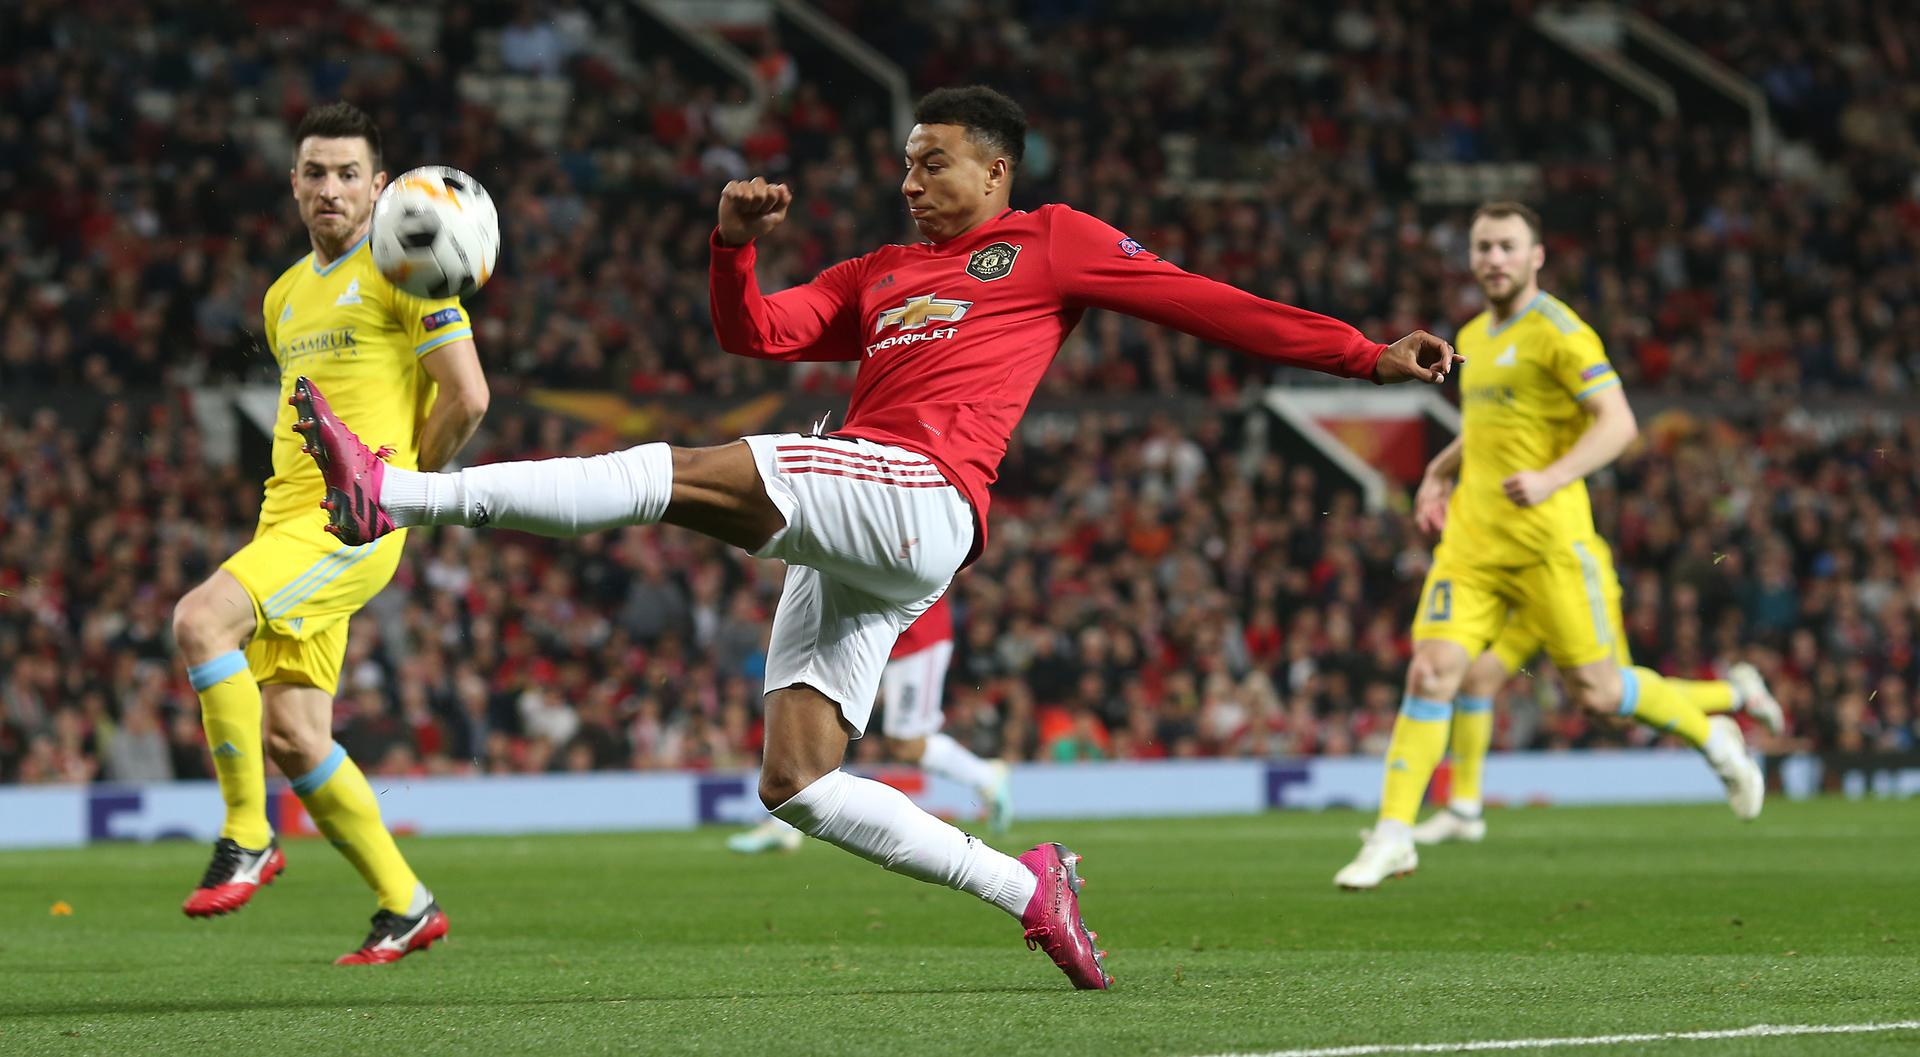 Jesse Lingard stretches for the ball 。。against FC Astana